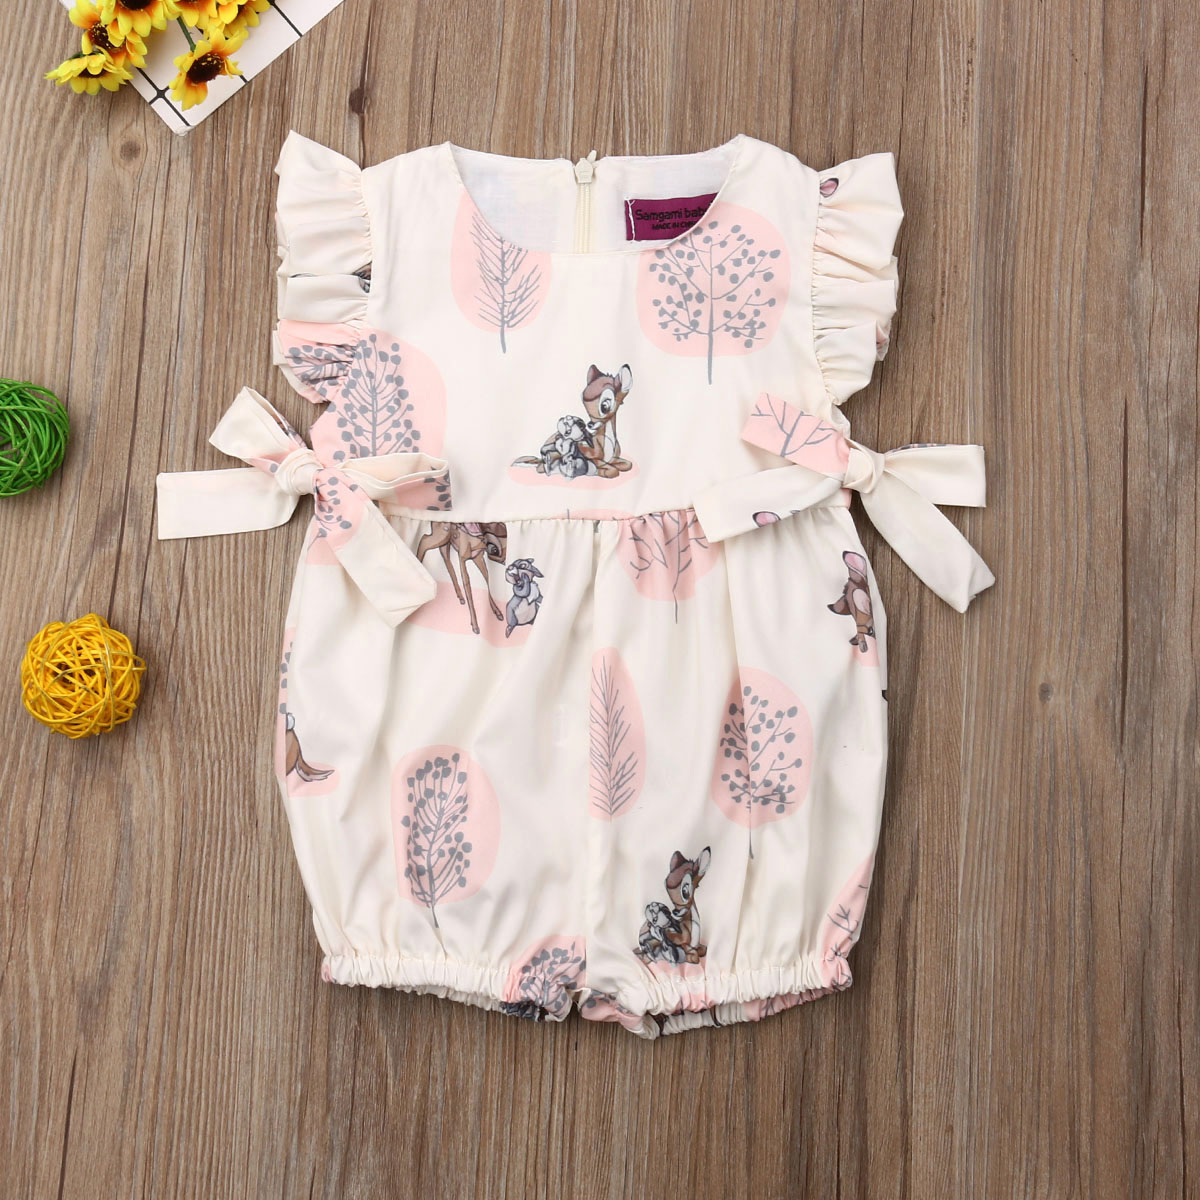 Cute Newborn Baby Girl Animal Printed   Romper   Jumpsuit Summer Outfits Clothes Sunsuit